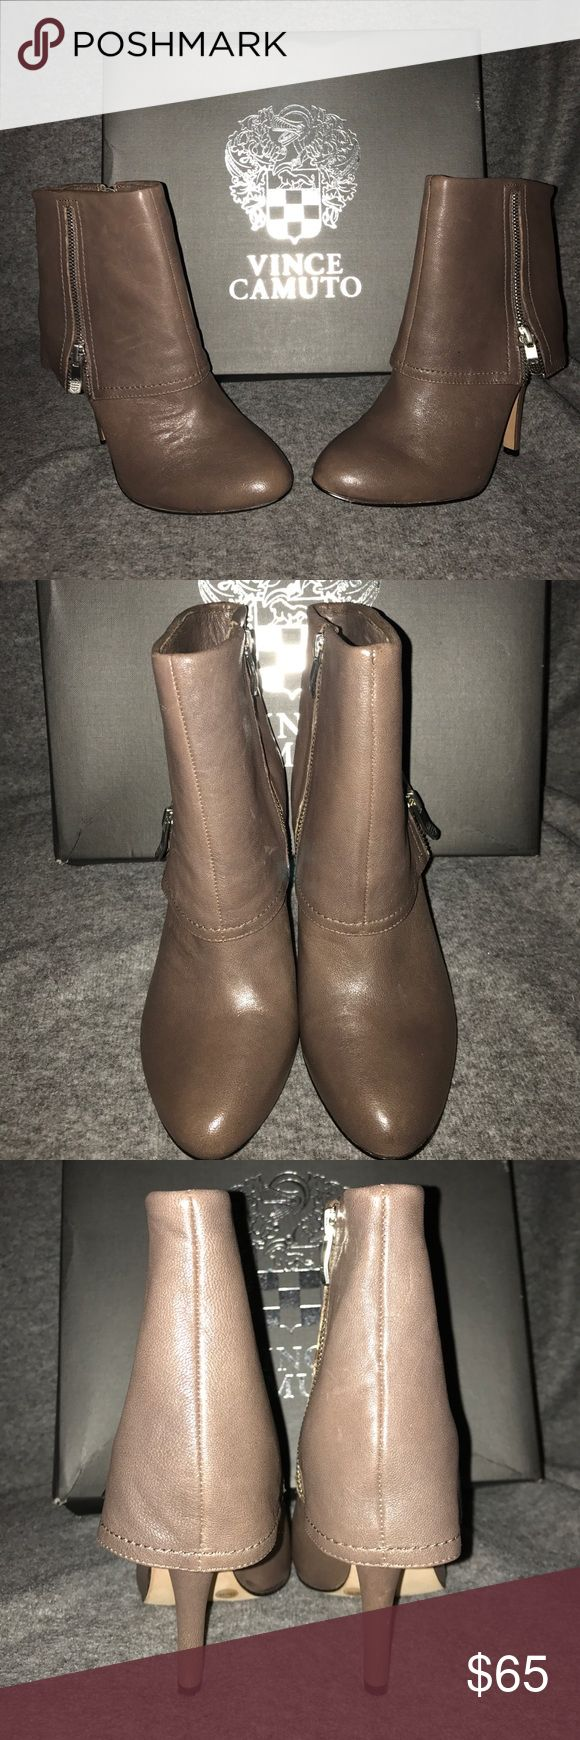 Vince Camuto Boots NIB A beautiful brand new pair of women's size 6 Vince Camuto leather ankle boots they are a tannish neutral color with zippers on both sides but the zippers on the inside are the only ones that zip up and down...they have a heel length of 4 inches and the shoe itself is 8.5 inches tall they are in excellent condition still in the box and come from a smoke and pet free house Vince Camuto Shoes Ankle Boots & Booties